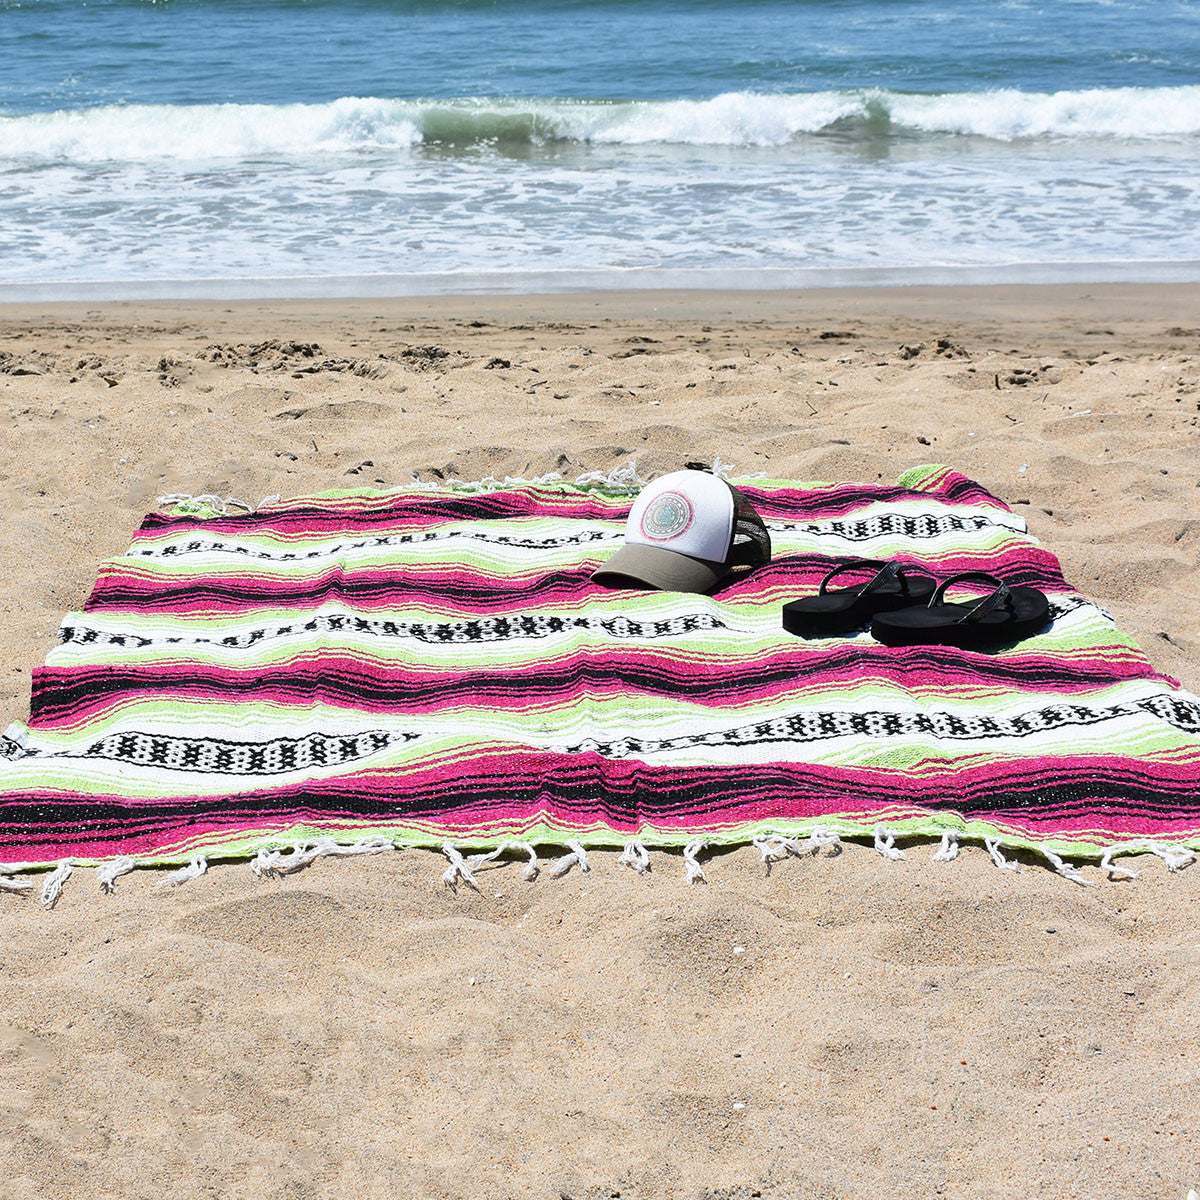 Boho beach blanket for cool summer style - Neon Candy Bohemian Fiesta Blanket.